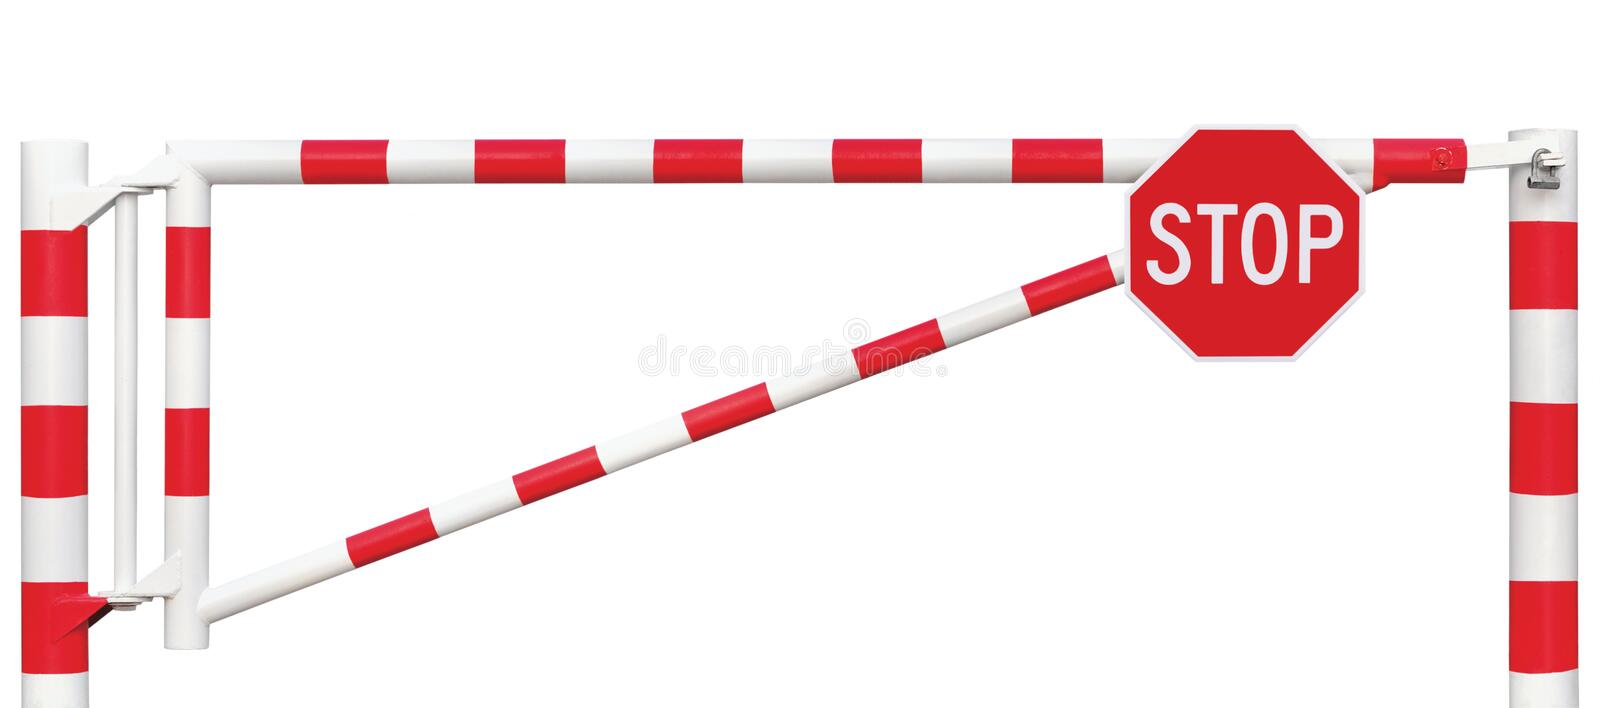 Gated Road Barrier Closeup, Octagonal Stop Sign, Roadway Gate Bar Bright White Red Traffic Entry Stop Block Vehicle Security Point. Gated Road Barrier Closeup stock photos